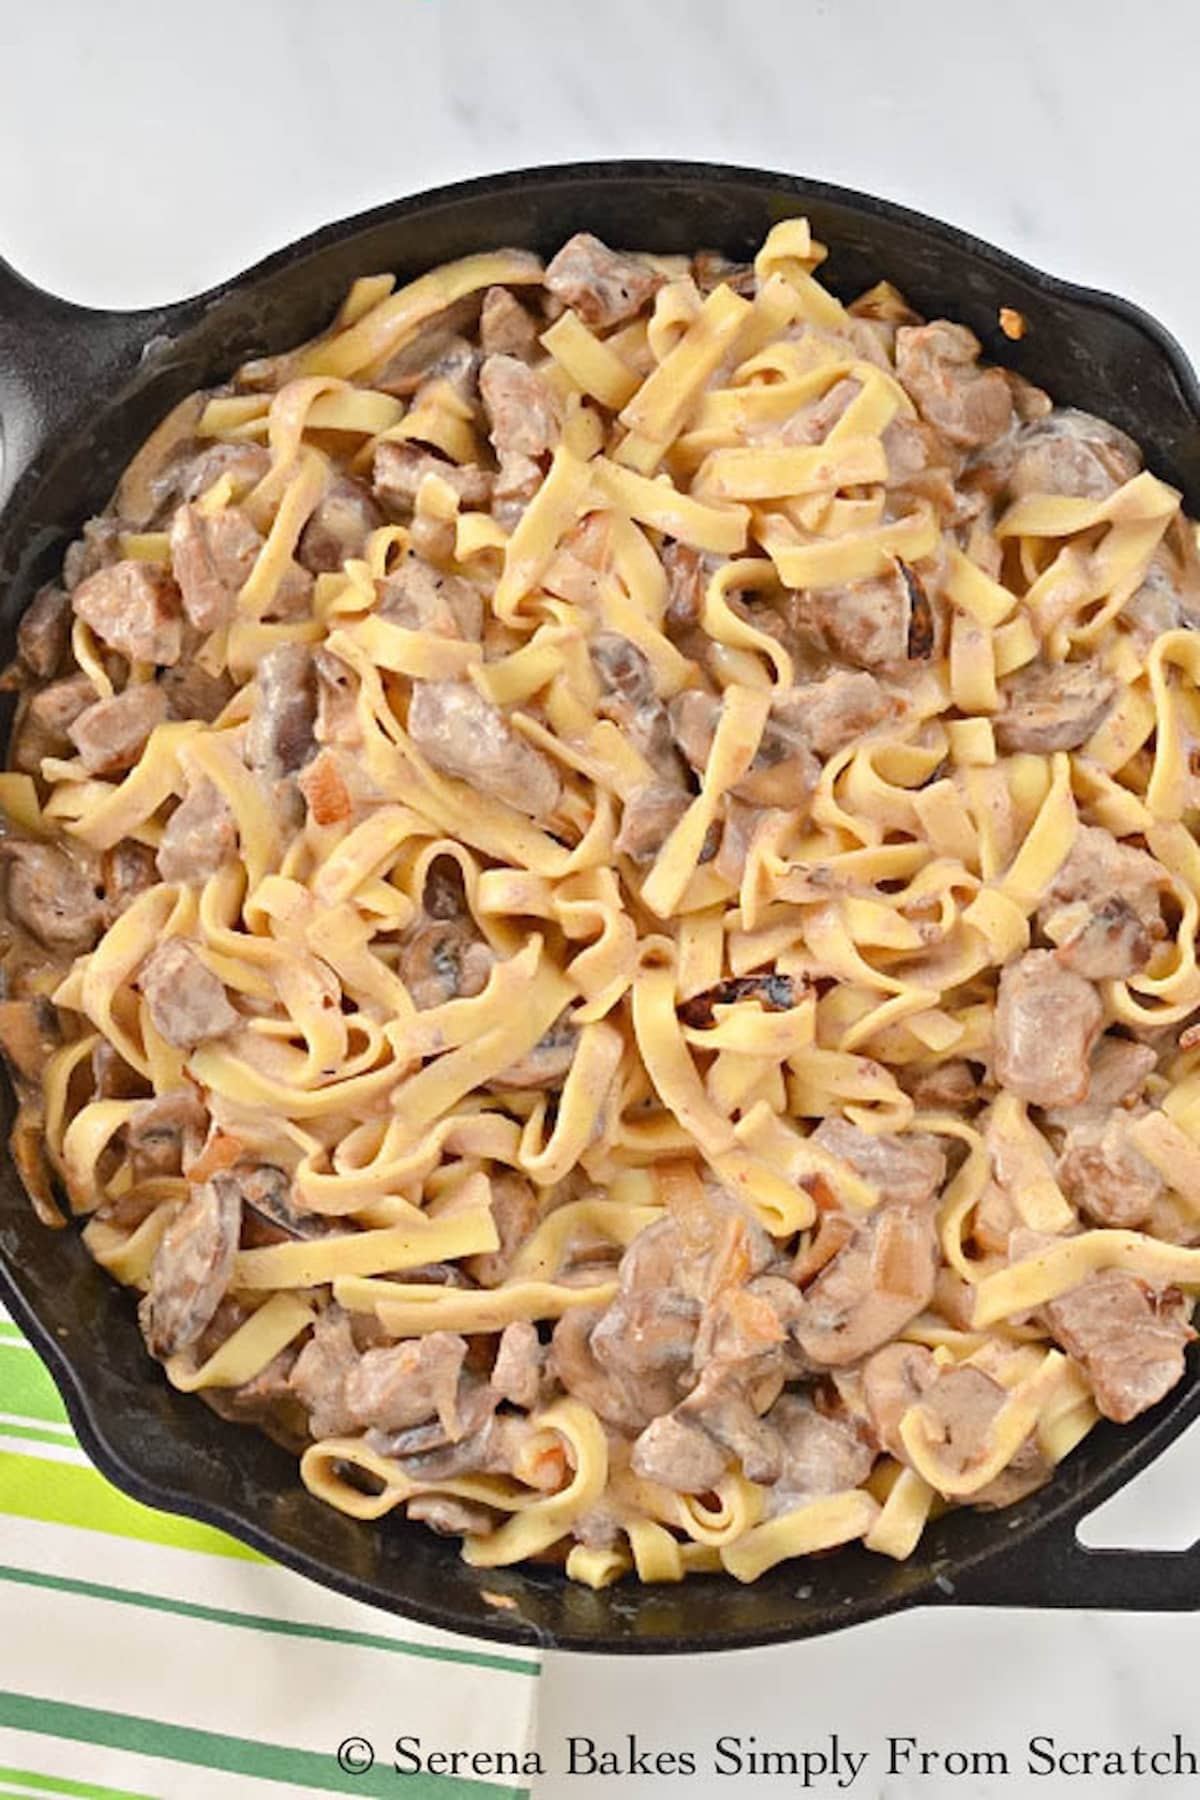 Beef Stroganoff From Scratch in a cast iron skillet.